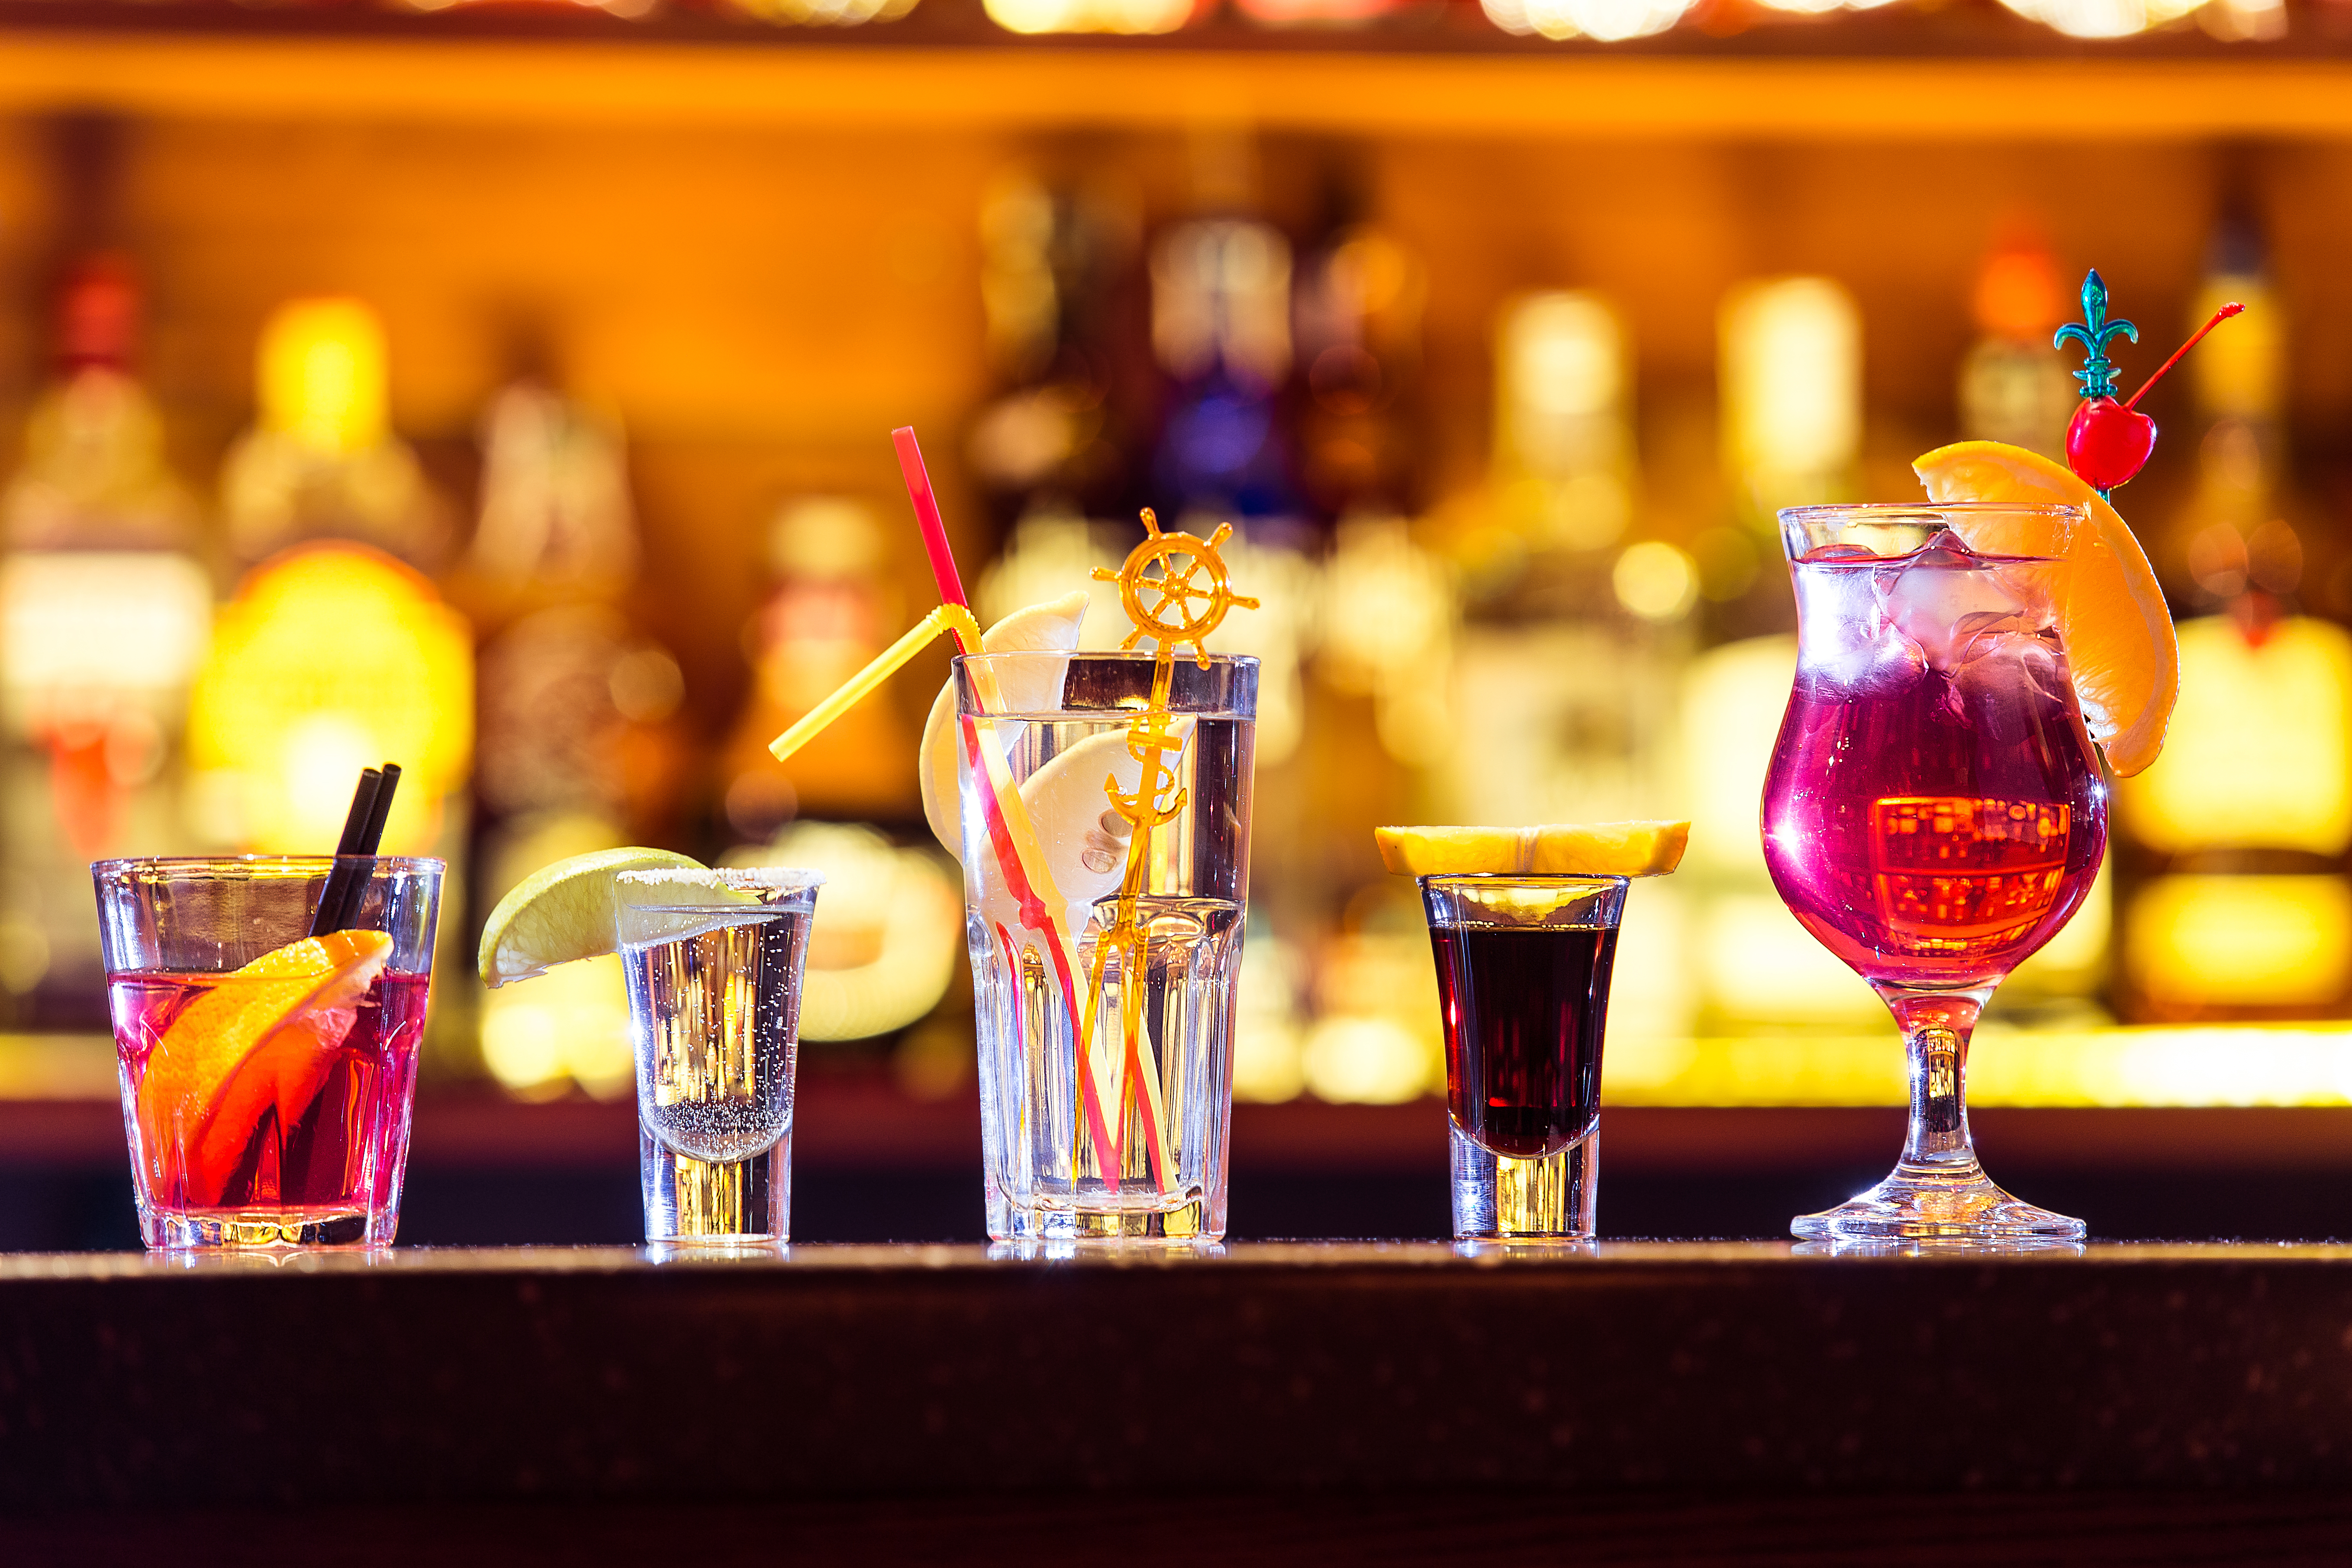 Drinking This Type Of Booze Will Make You More Attractive To Men, Science Says